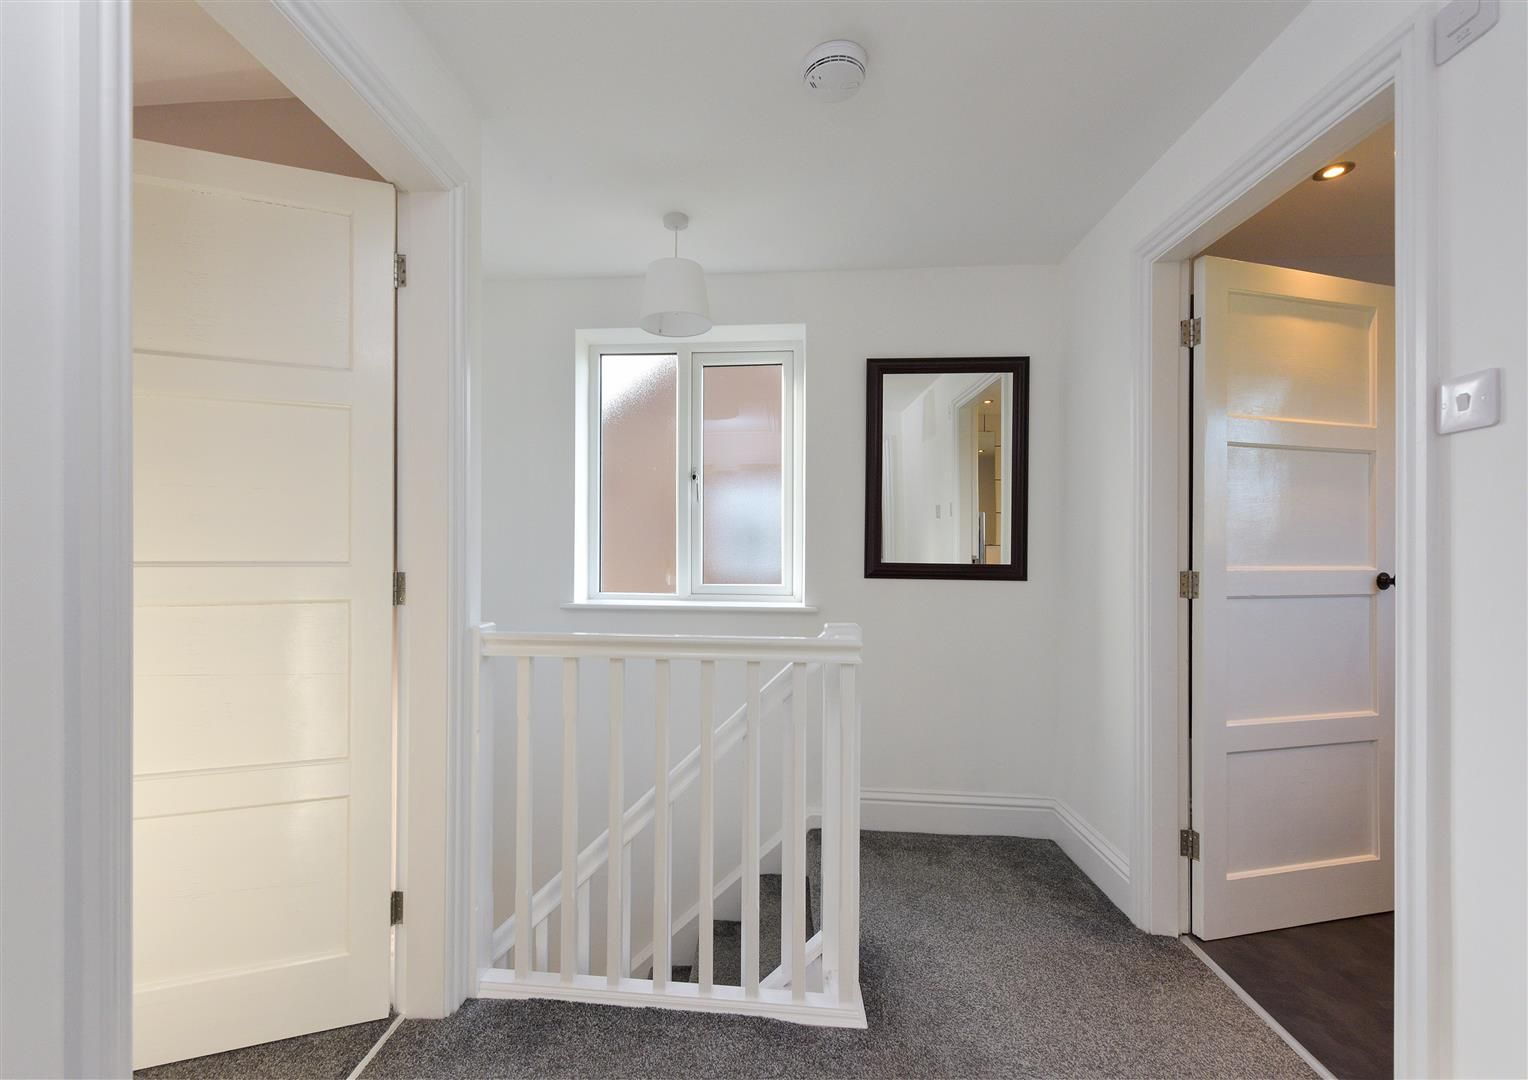 3 bed house for sale in Clent  - Property Image 19